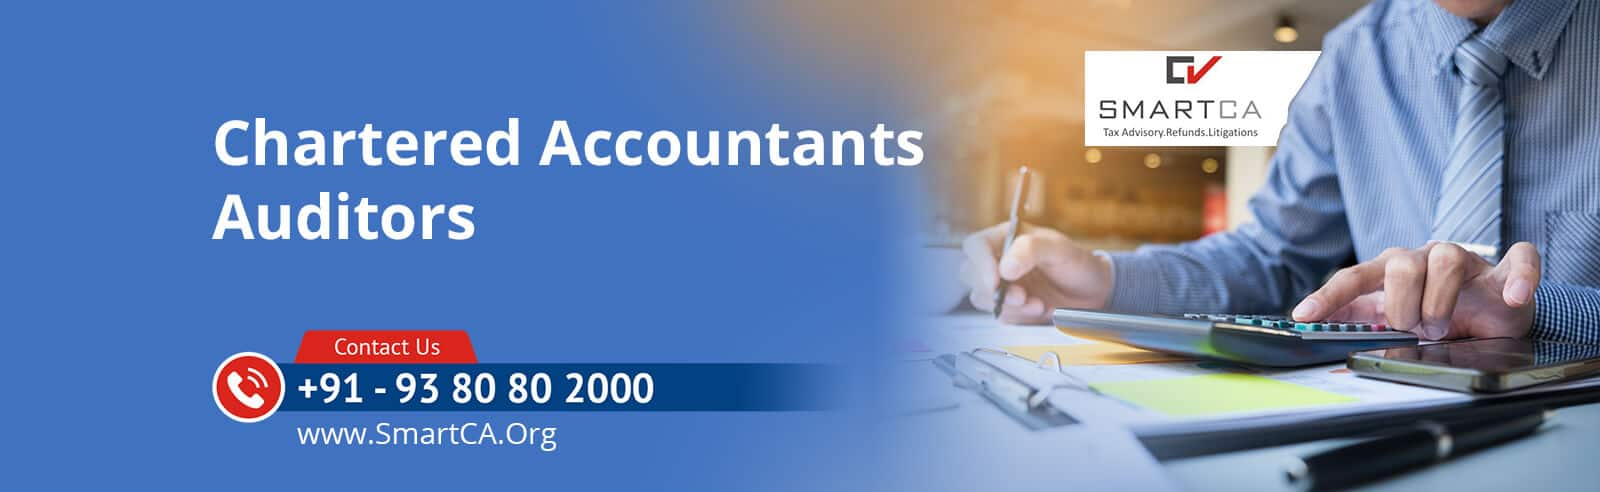 Auditors in Chennai MEENAMPAKKAM